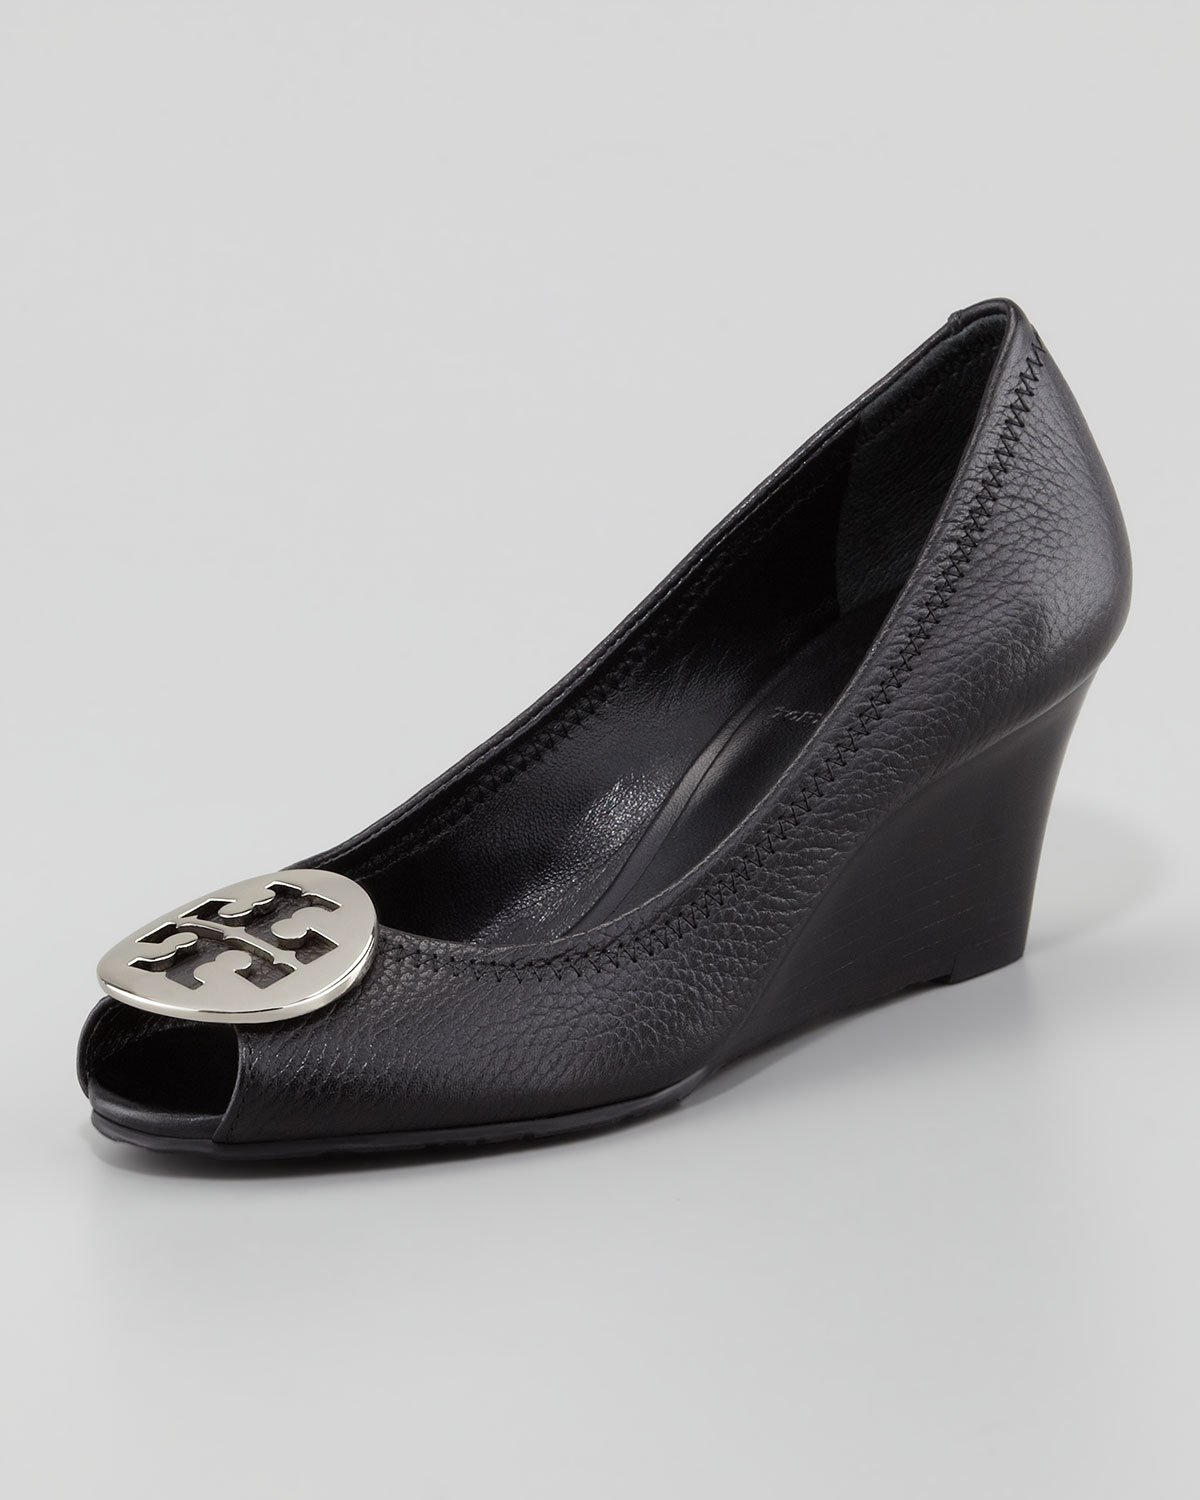 bc11c8ea4a4c Lyst - Tory Burch Sally 2 Leather Wedge Pump in Black